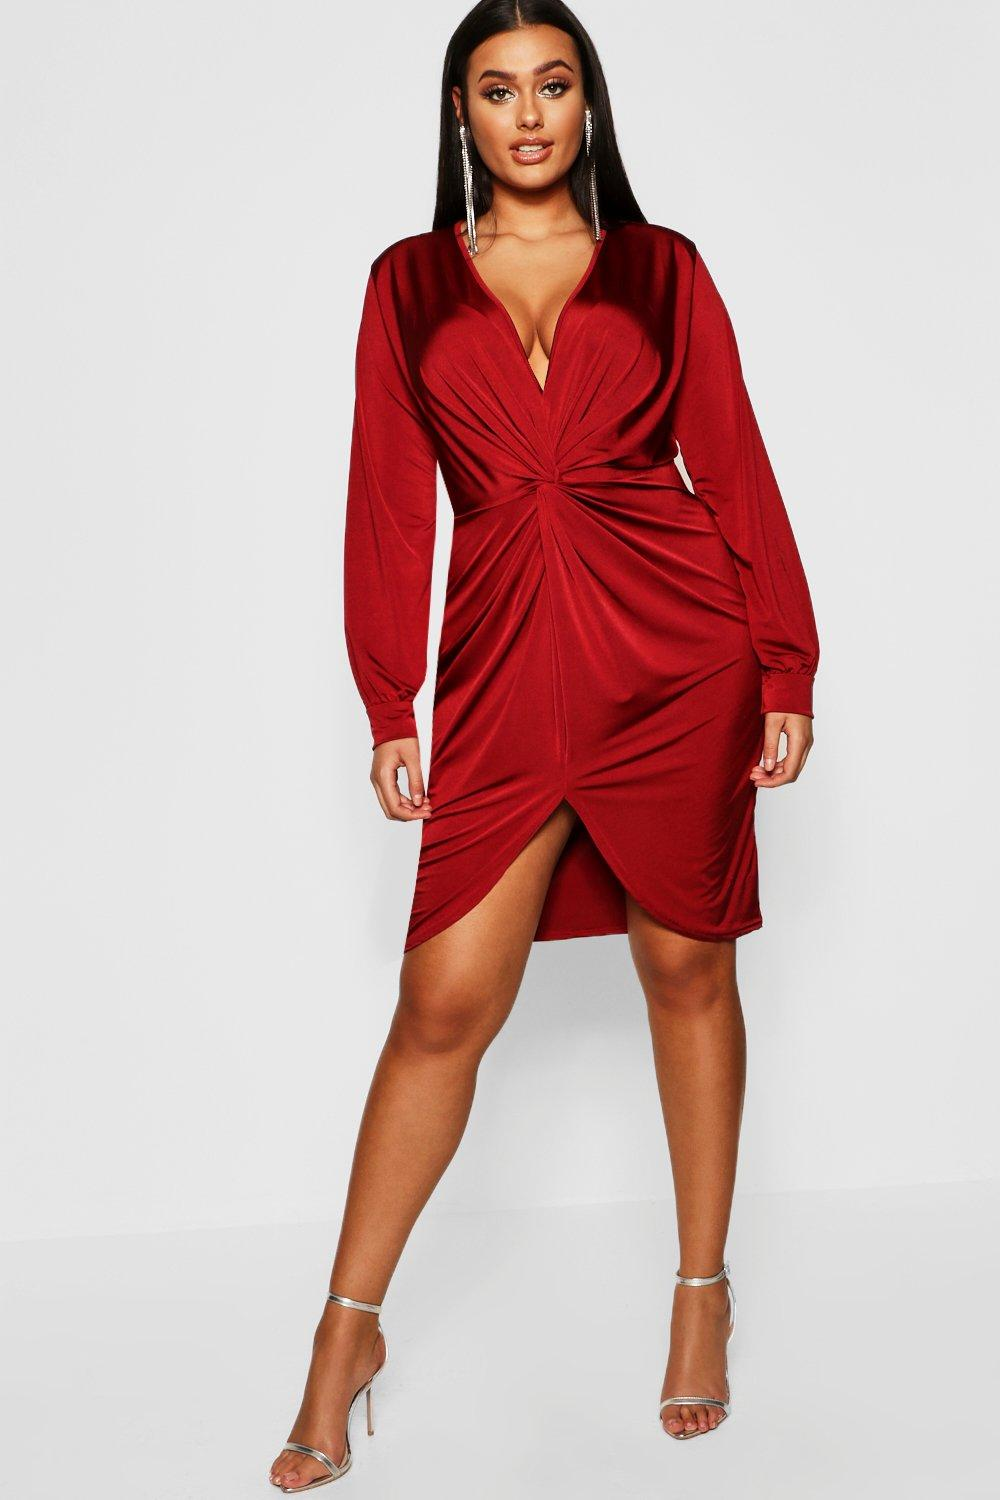 boohoo Womens Plus Disco Slinky Twist Front Wrap Dress - Red - 18, Red